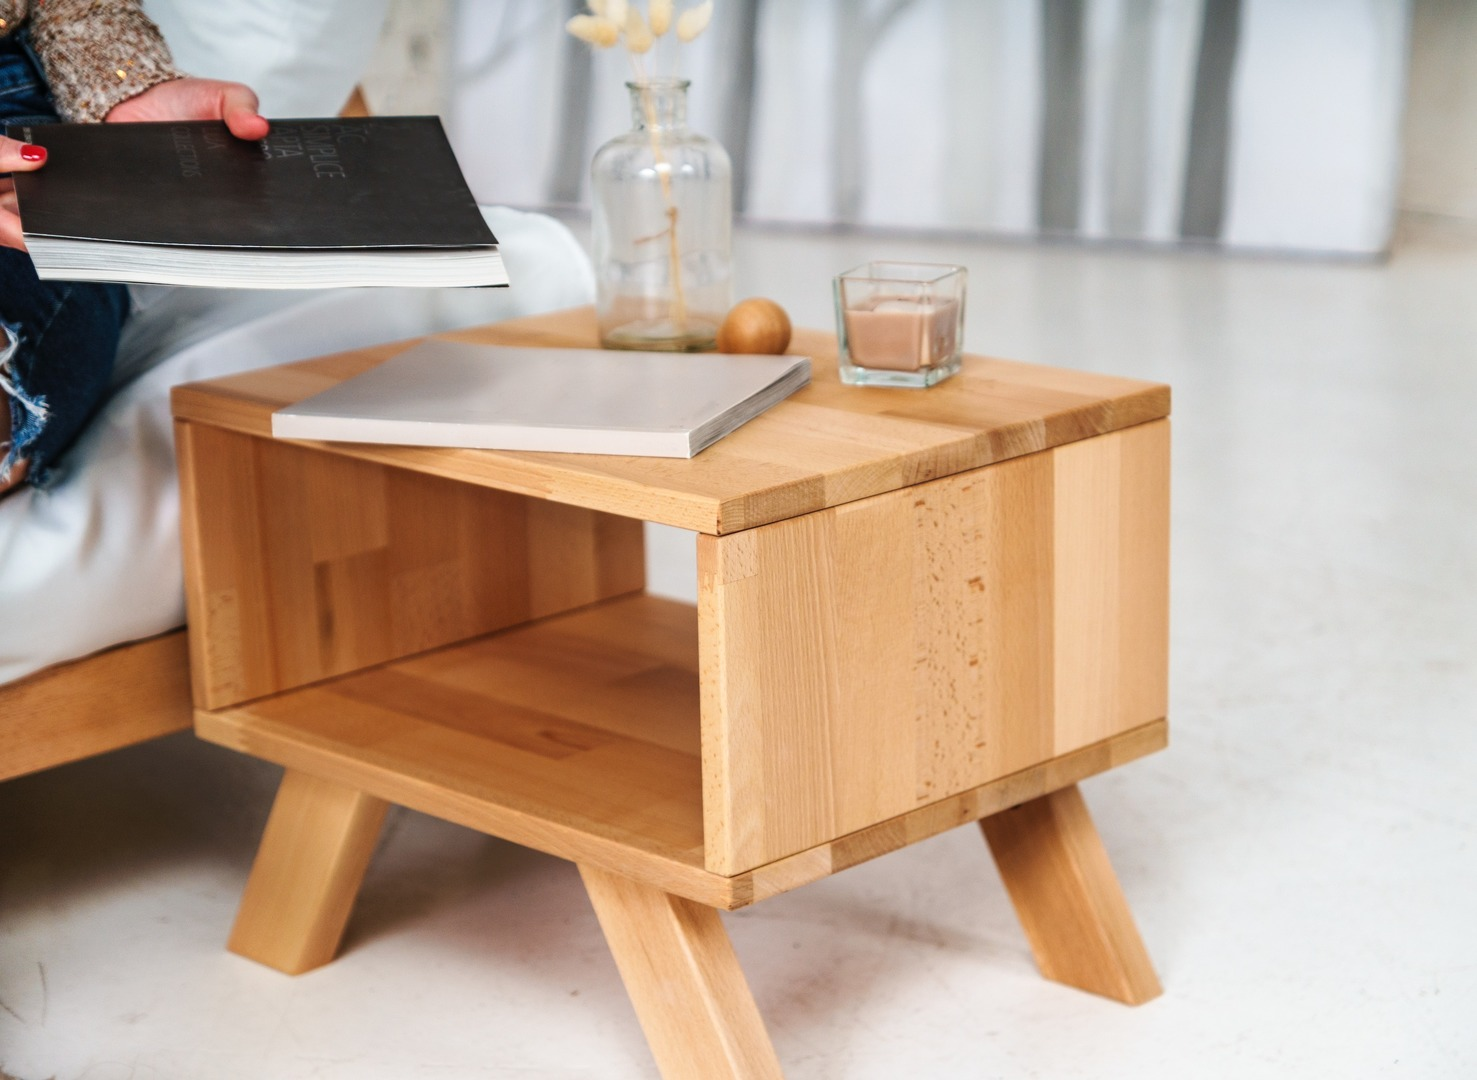 Allegro bedside table, raw wood